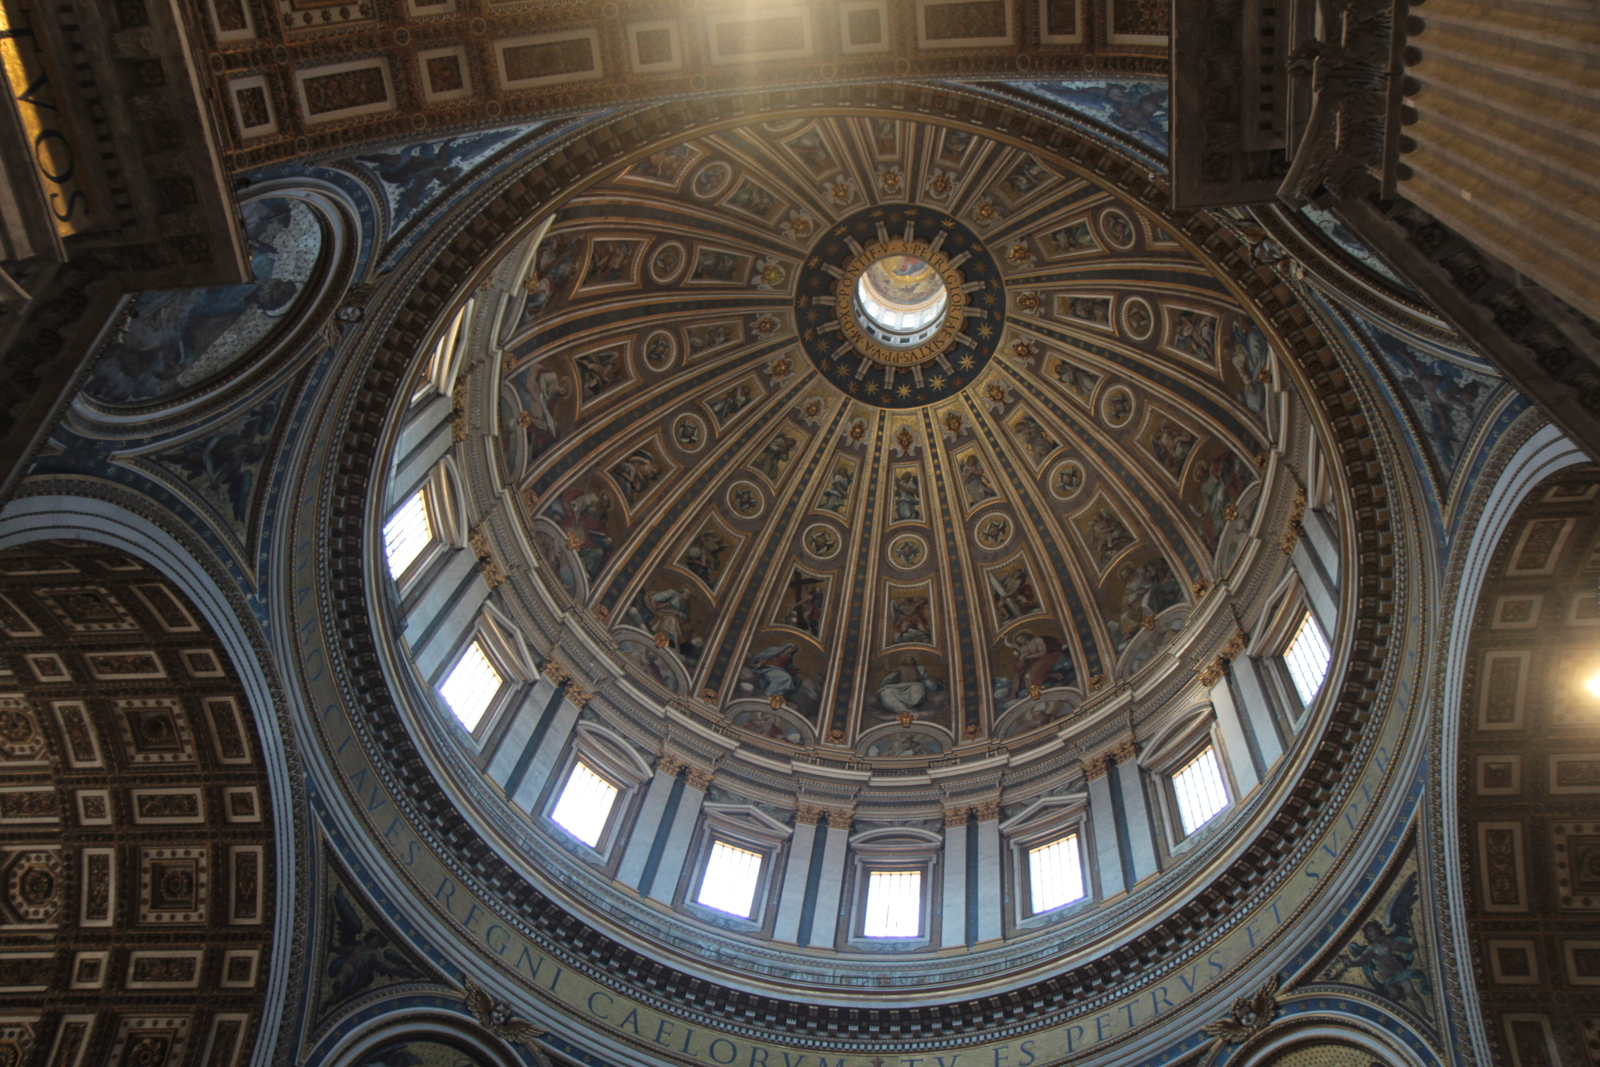 The interior of the dome of St. Peter's Basilica.